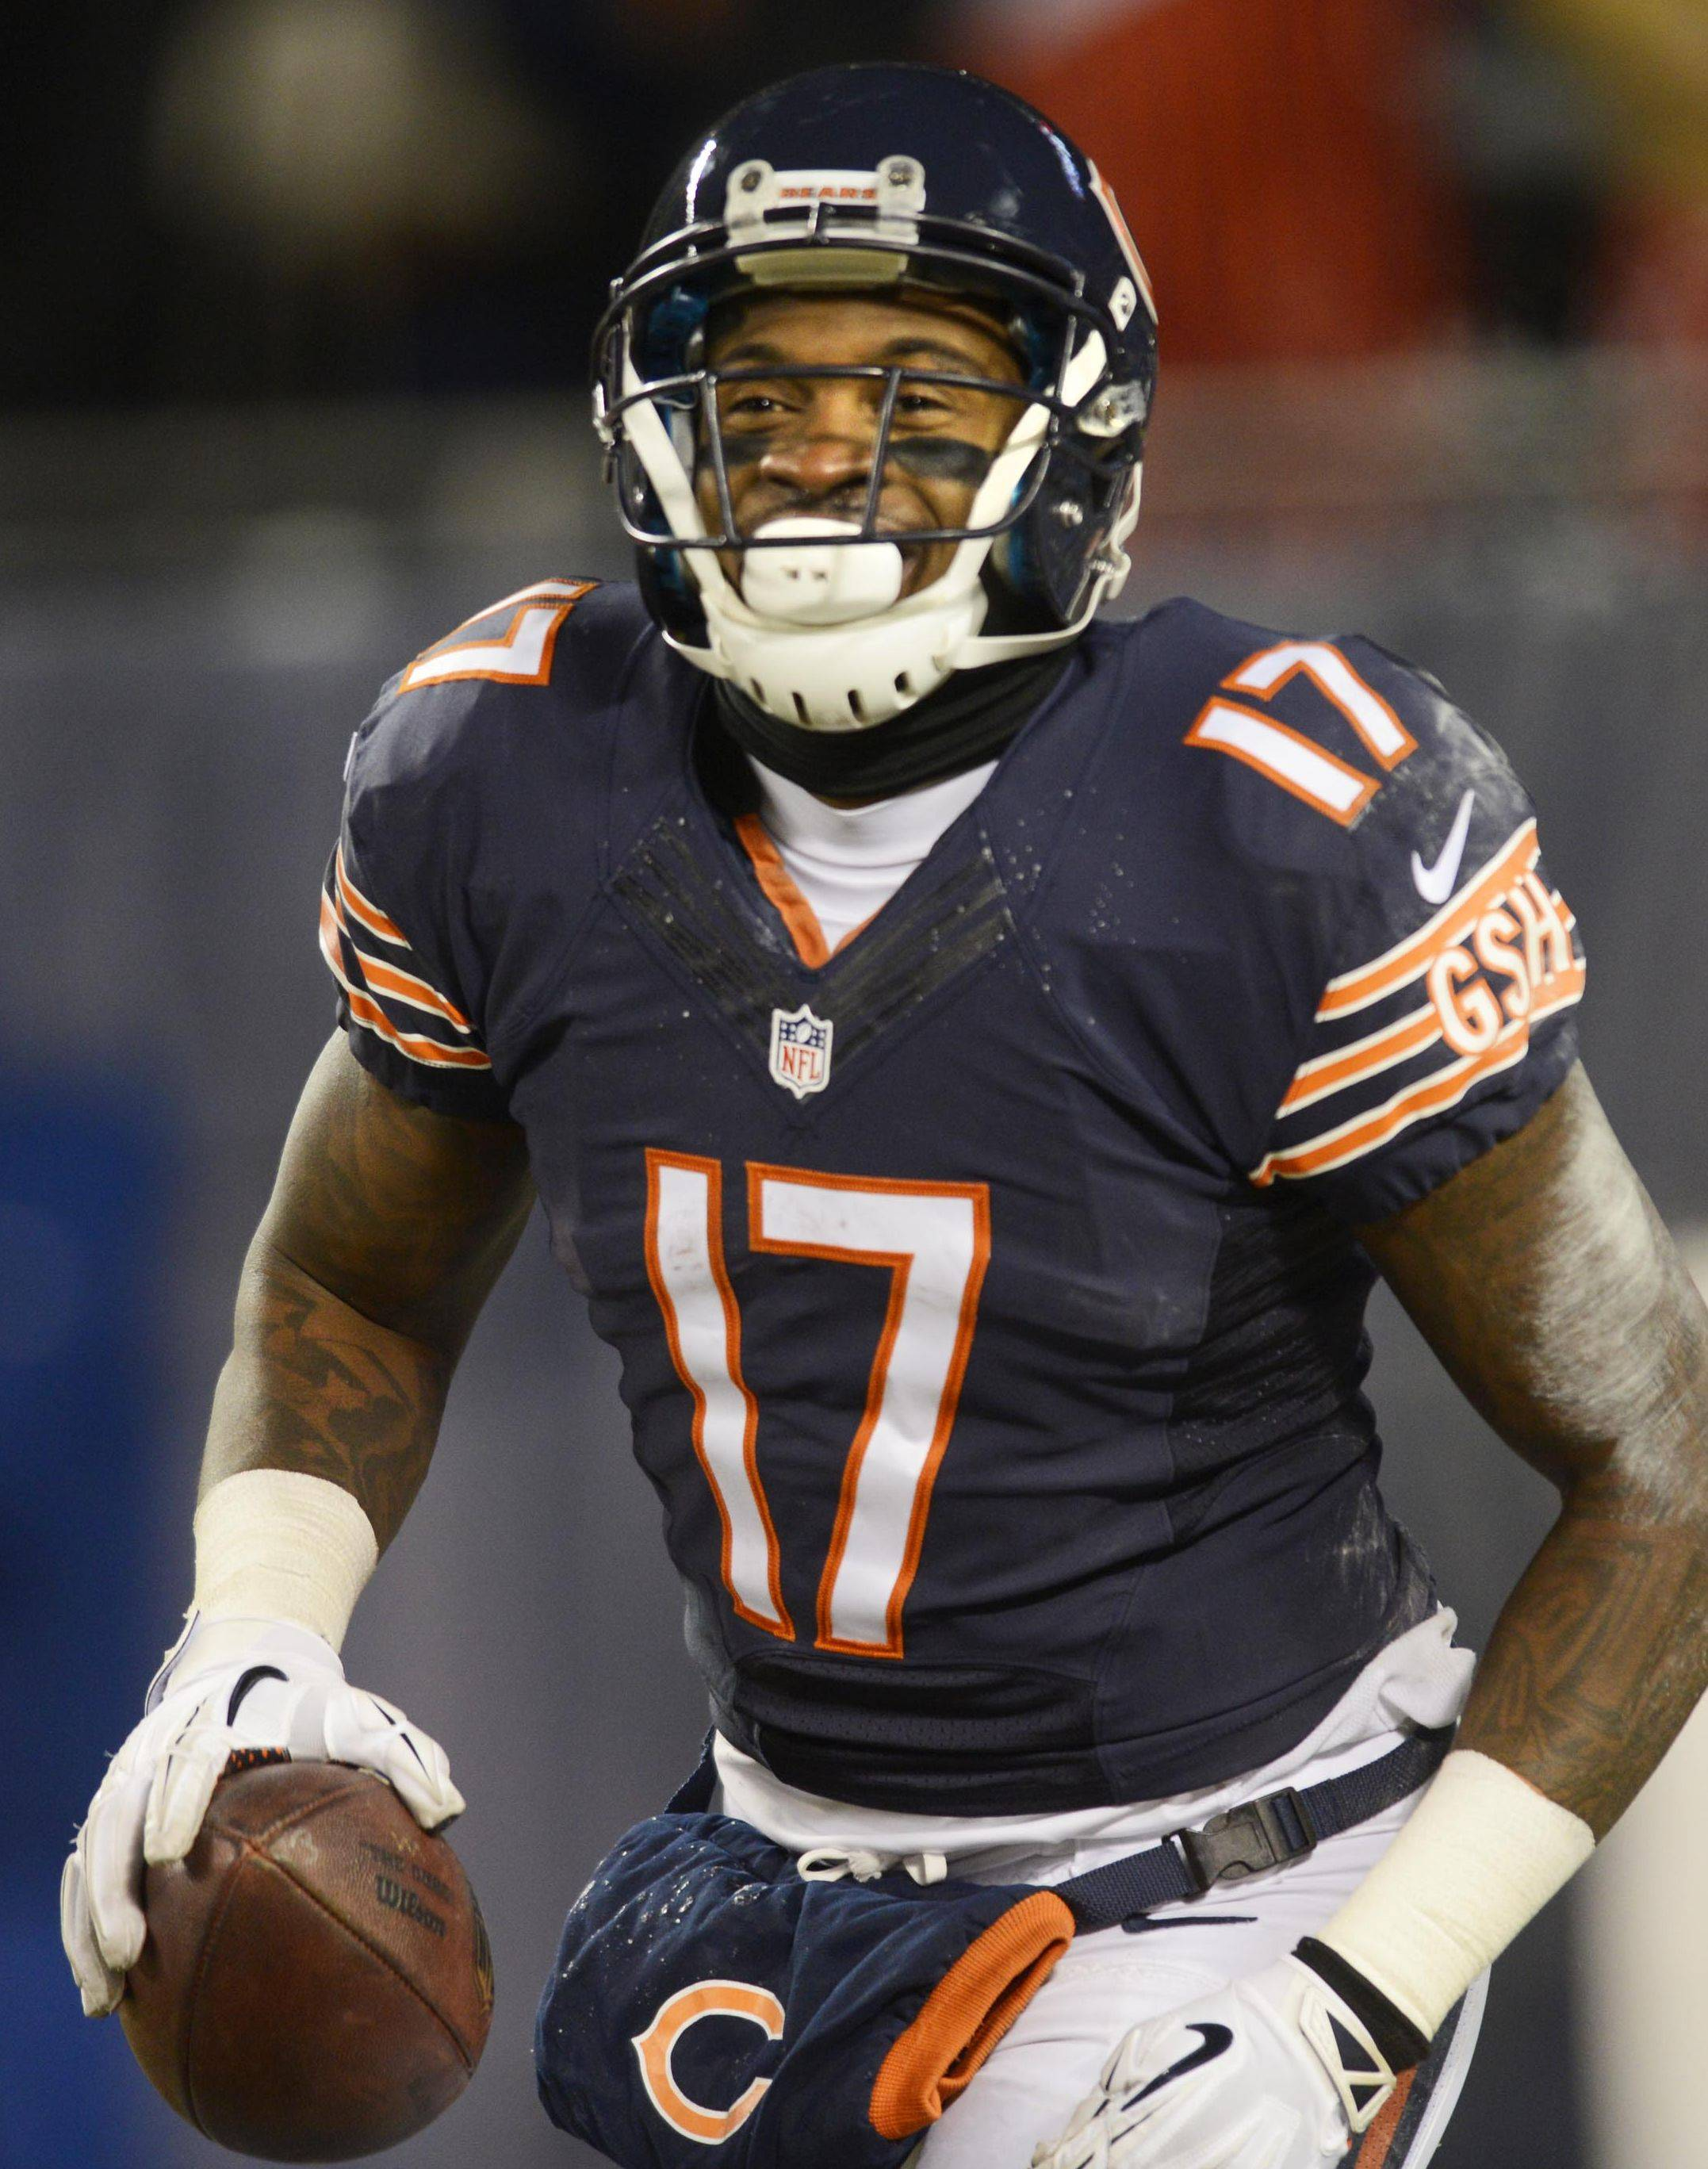 Bears WR Alshon Jeffery beat out Cleveland's Josh Gordon as this season's biggest fantasy football surprise.